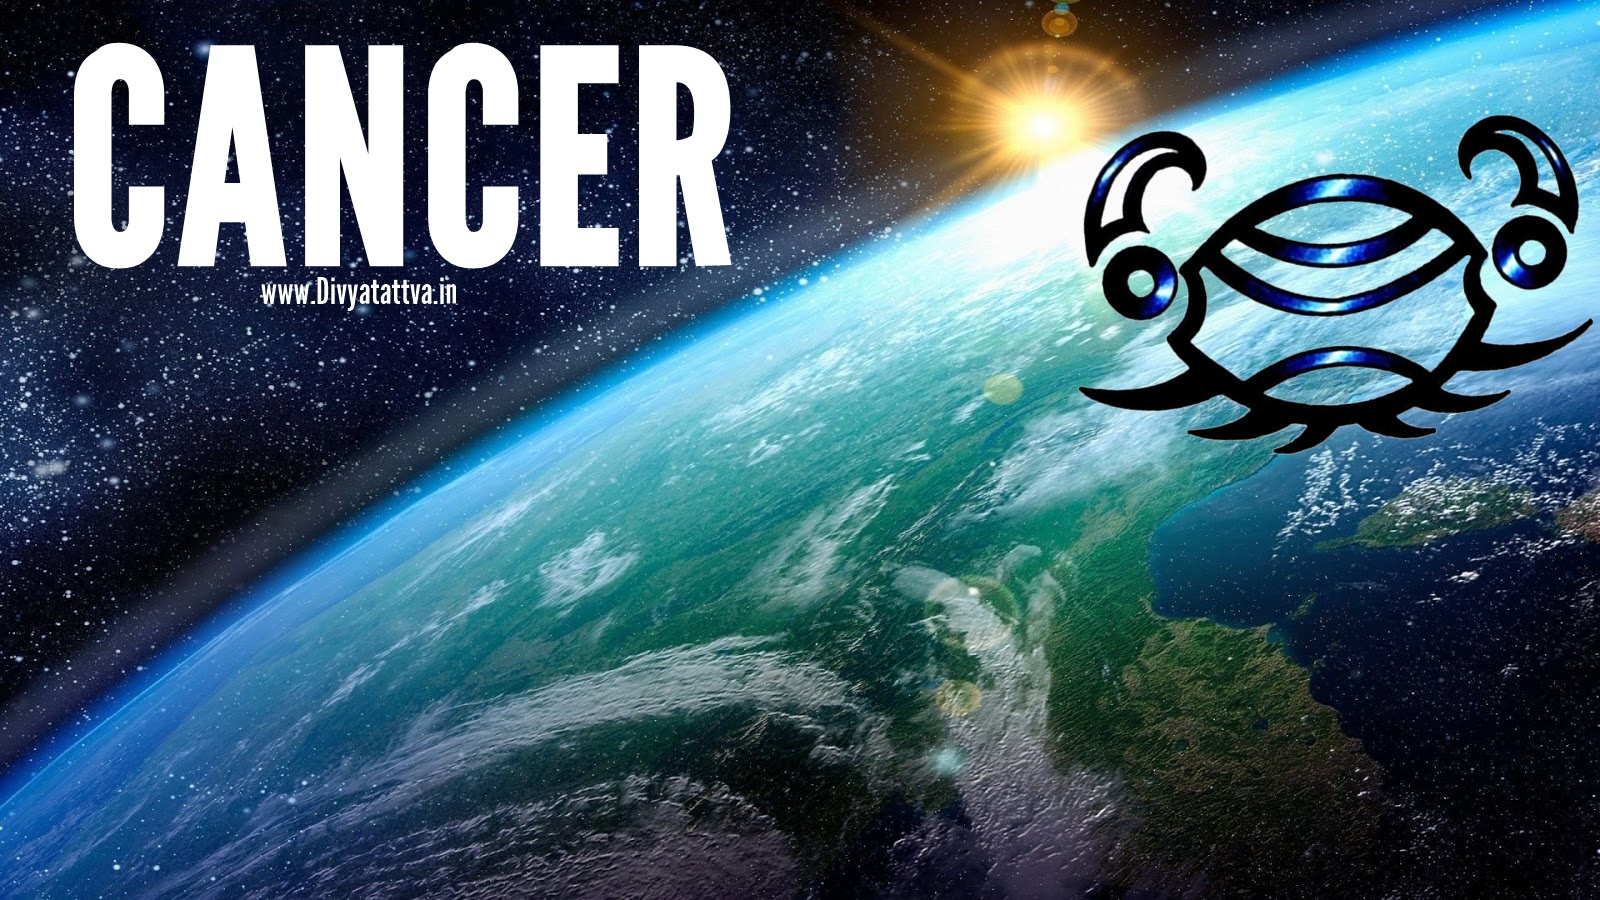 Zodiac signs wallpapers, astrology online photos for Aries cancer gemini